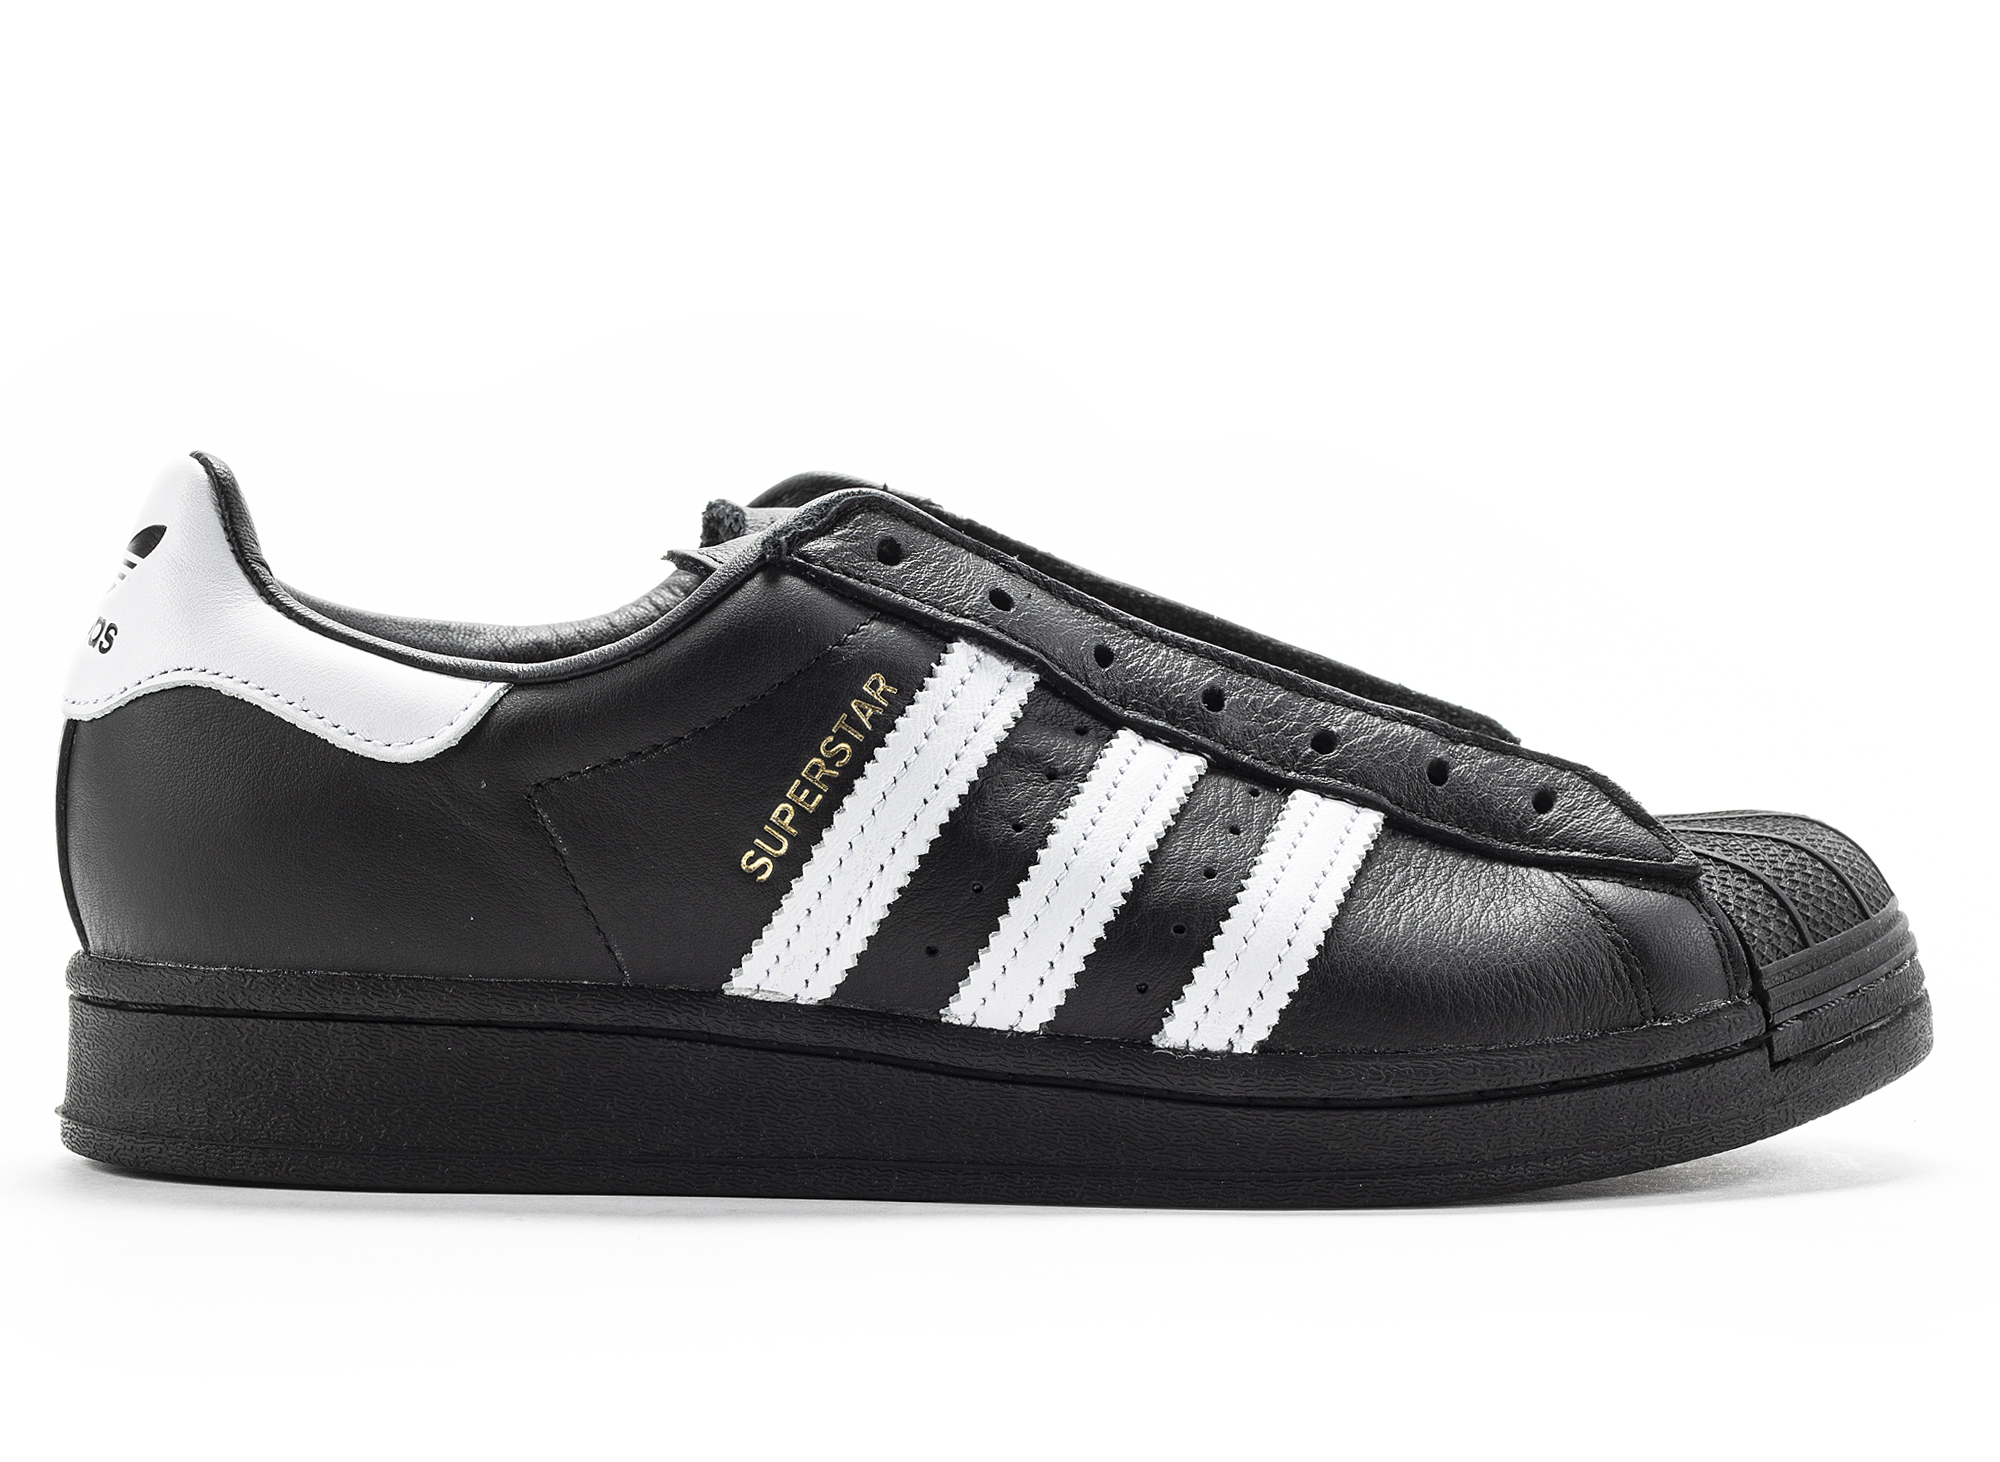 Adidas Superstar Laceless Sneakers in Black